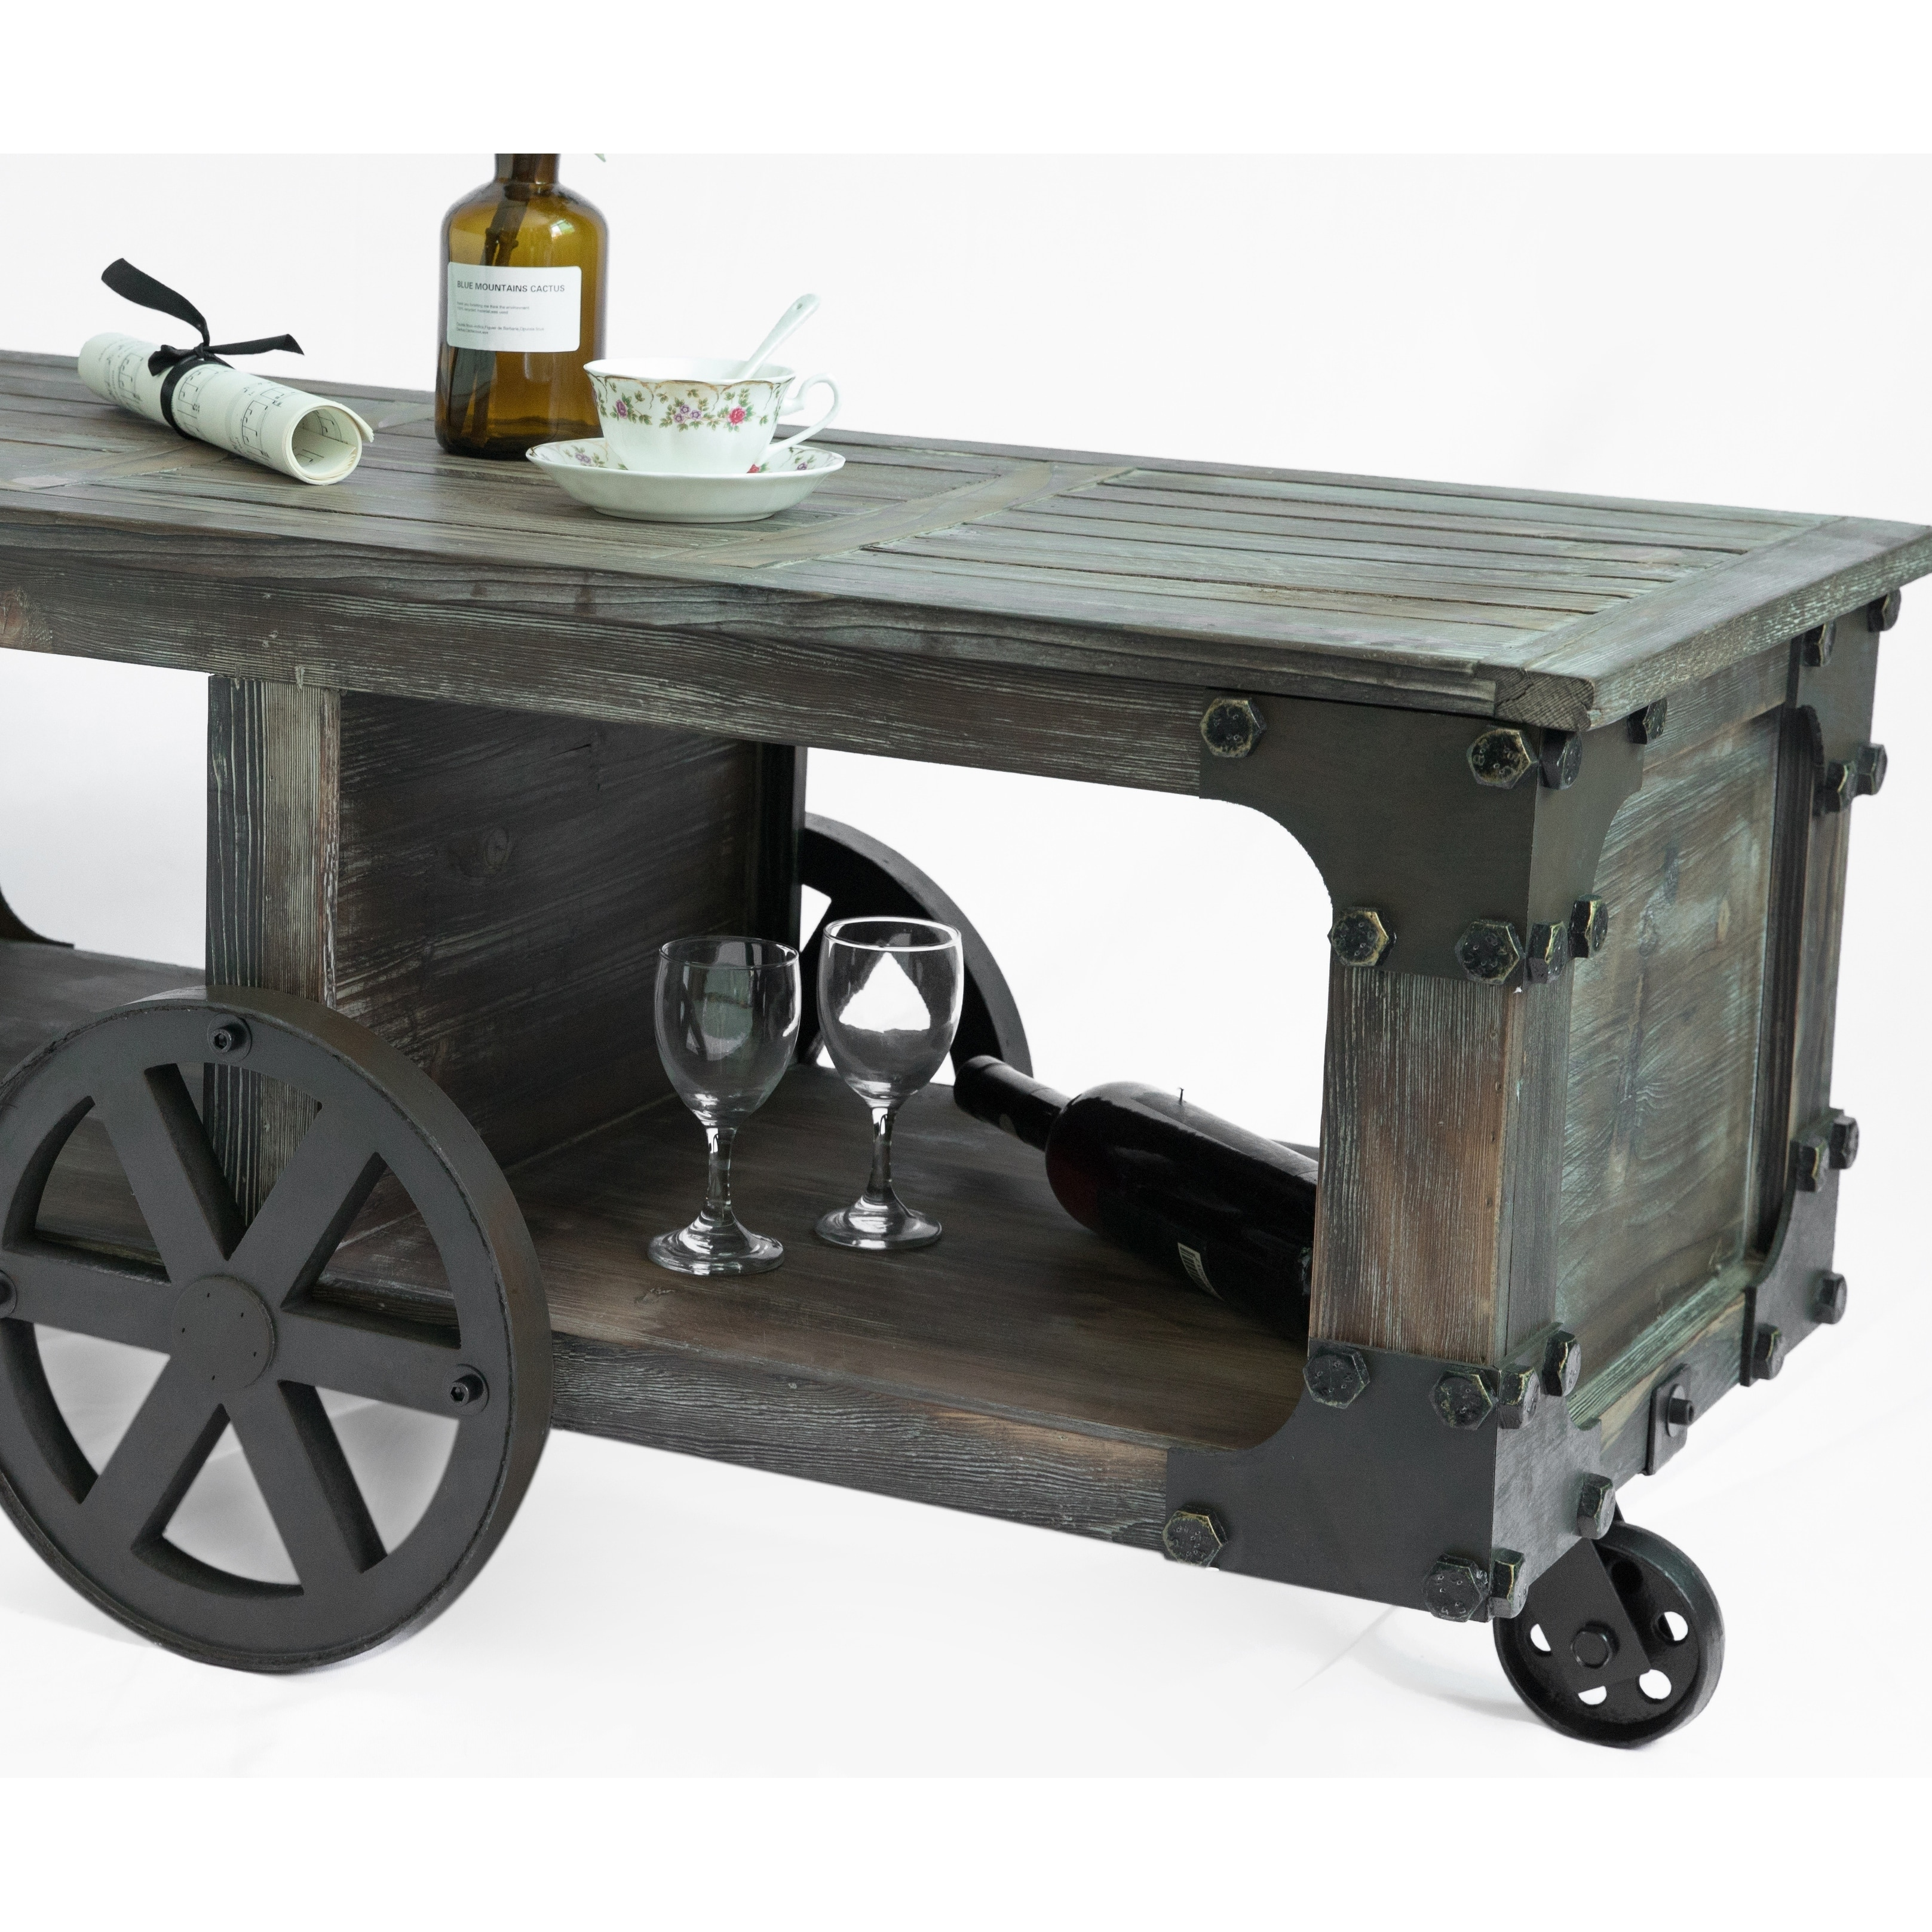 Rustic Wagon Style Coffee End Table Shelf And Wheels Free Shipping Today 24239002